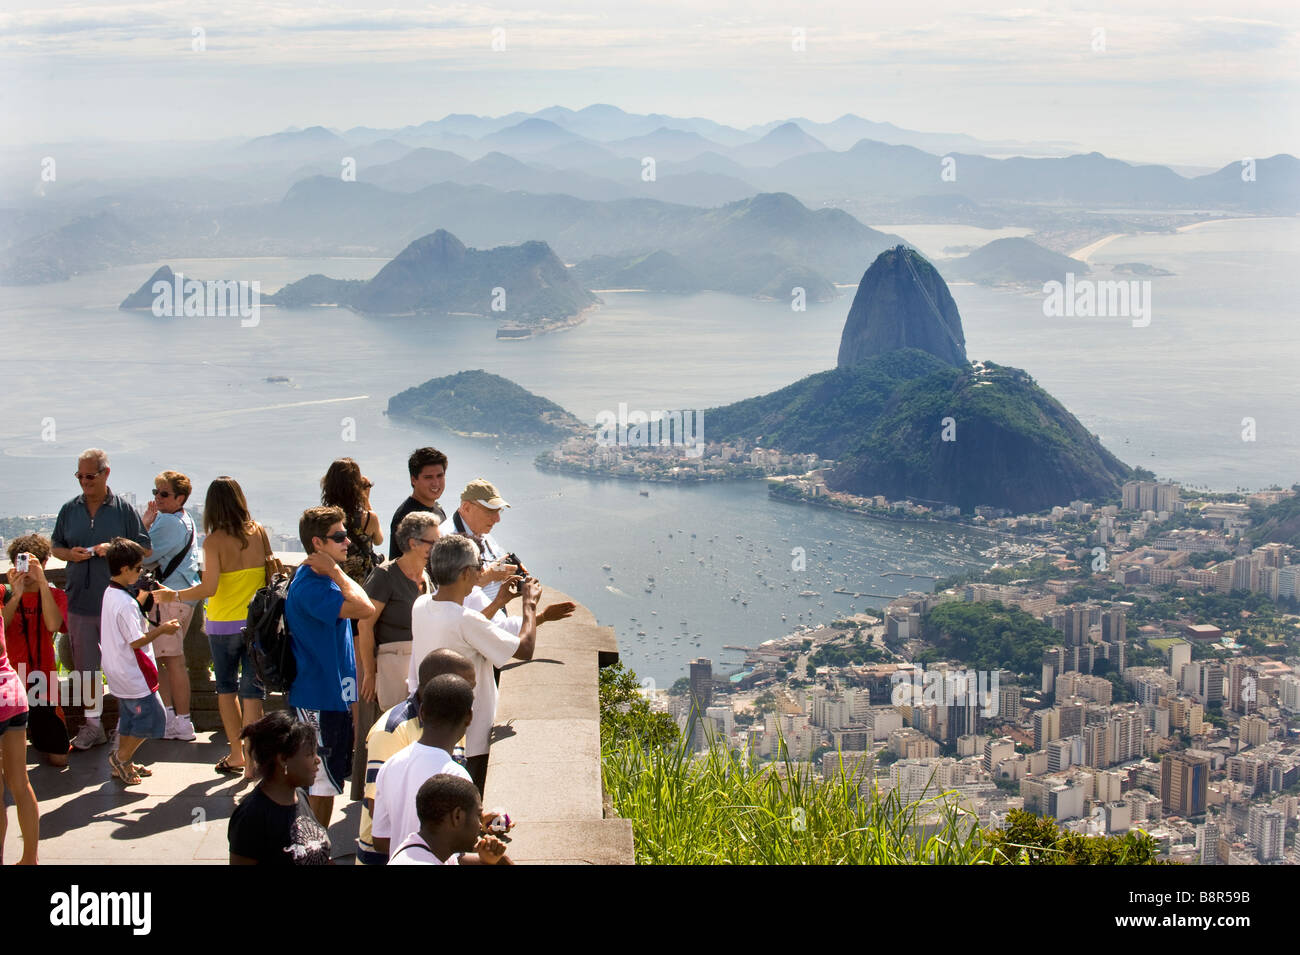 TOURISTS VIEW RIO DE JANEIRO FROM CORCOVADO HILL, BELOW CHRIST THE REDEEMER STATUE LOOKING TOWARDS SUGARLOAF MOUNTAIN Stock Photo